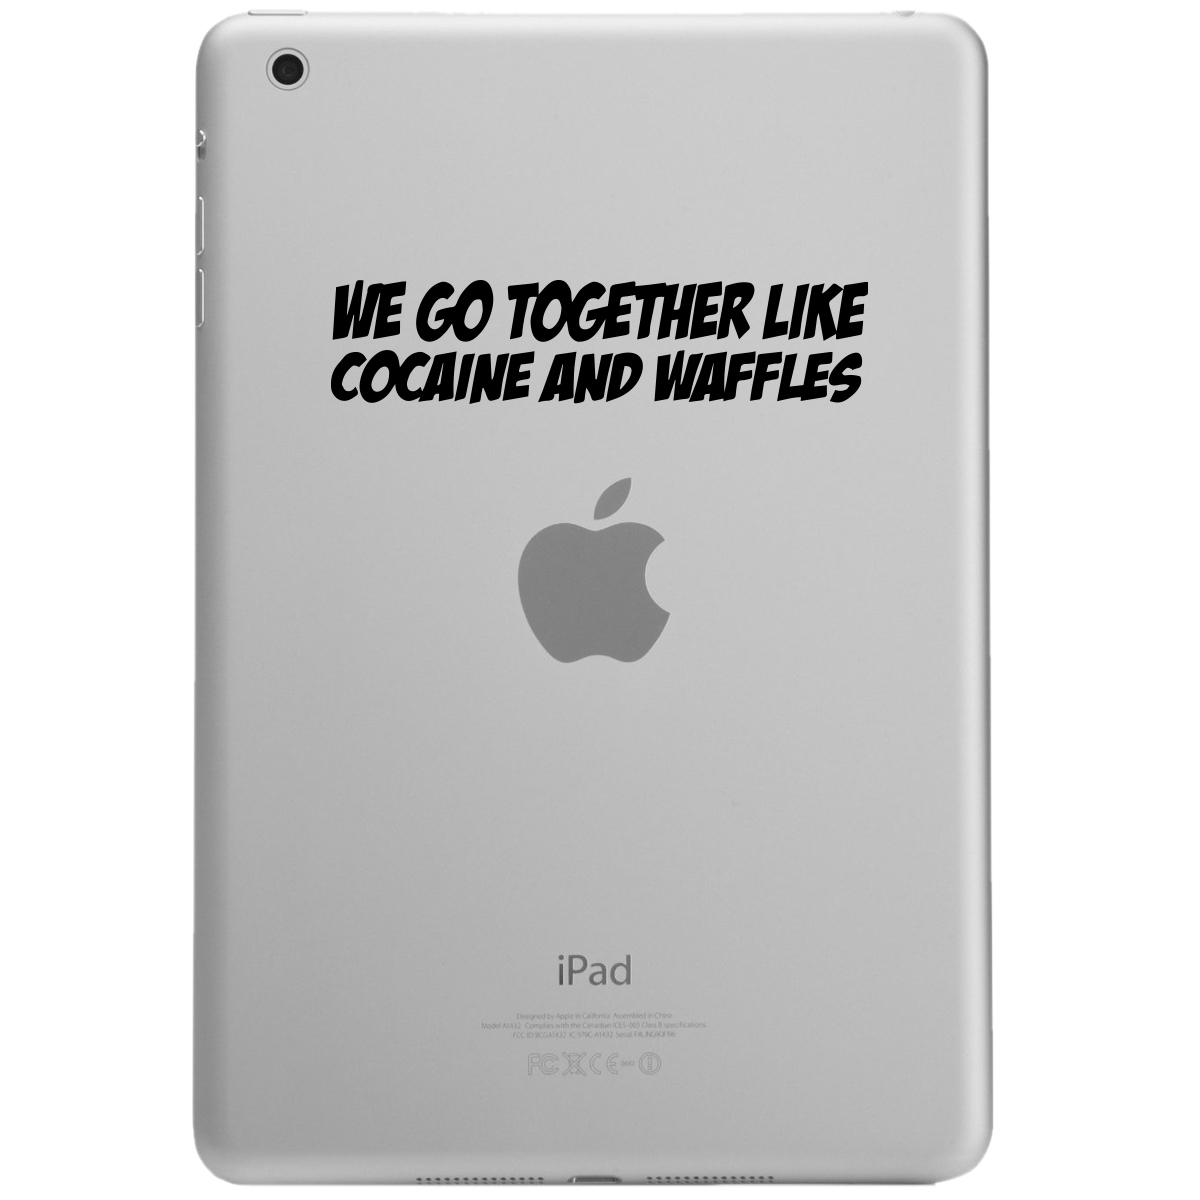 Funny Ricky Bobby Quote Cocaine and Waffles iPad Tablet Vinyl Sticker Decal